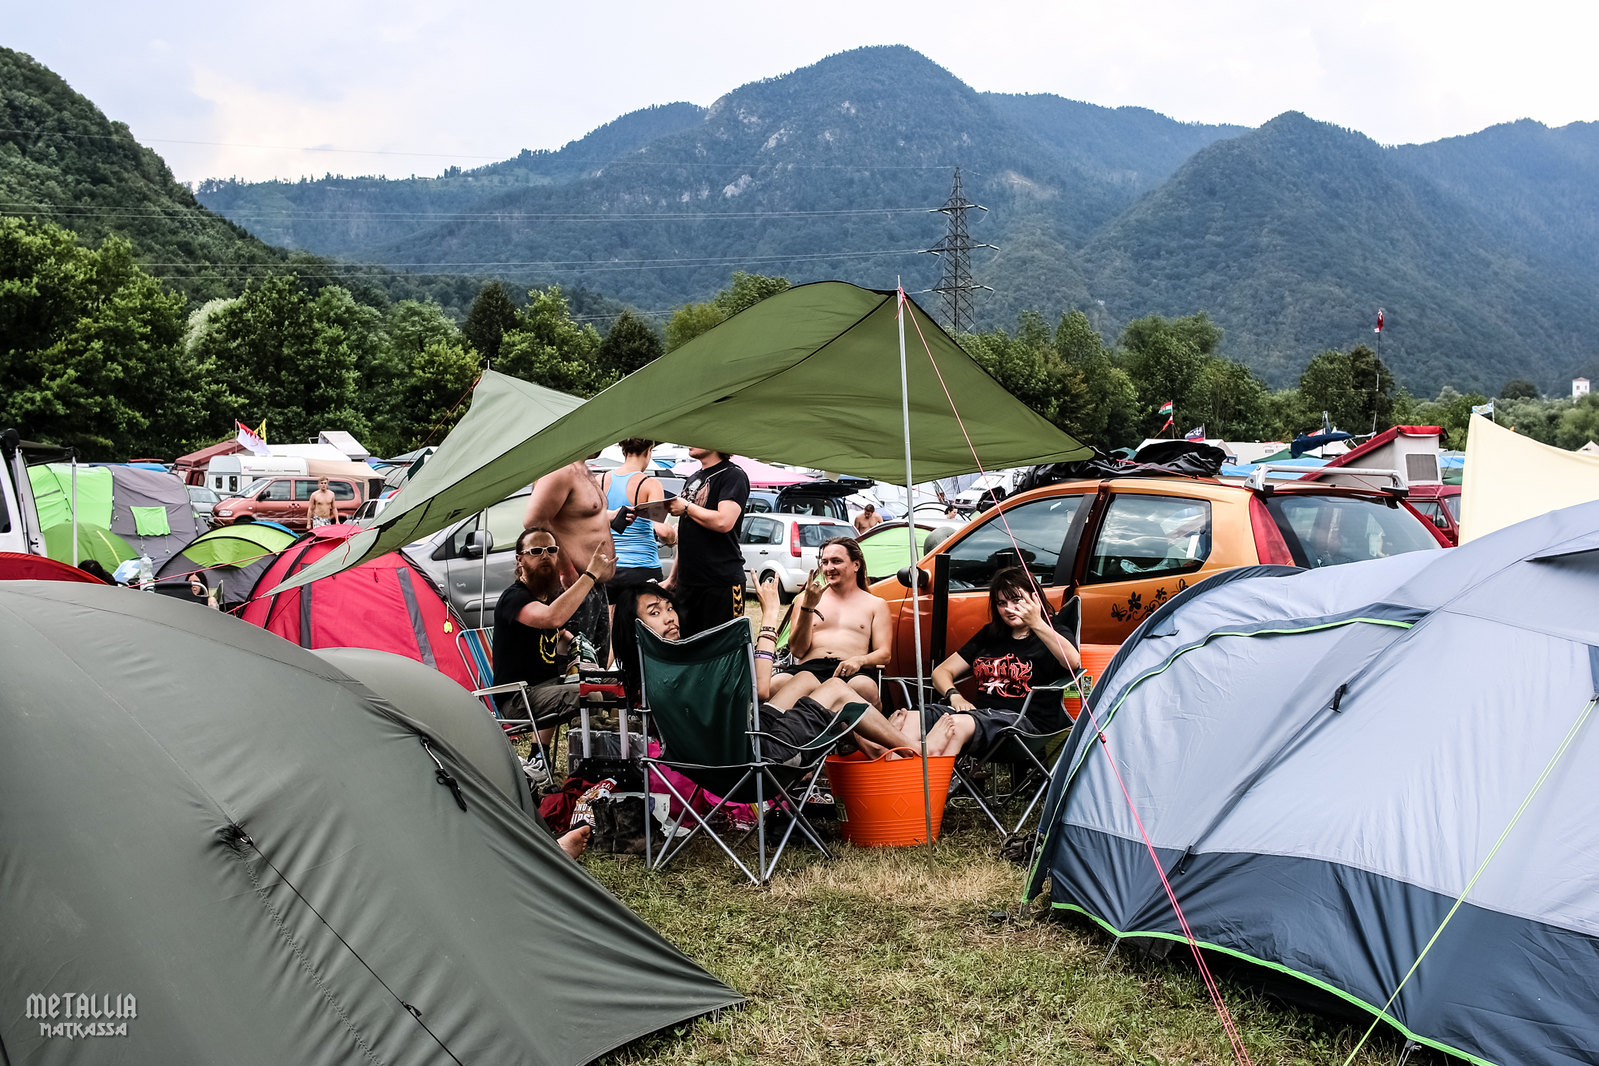 metaldays 2016, metaldays, metalcamp, metaldays camping site, campsite